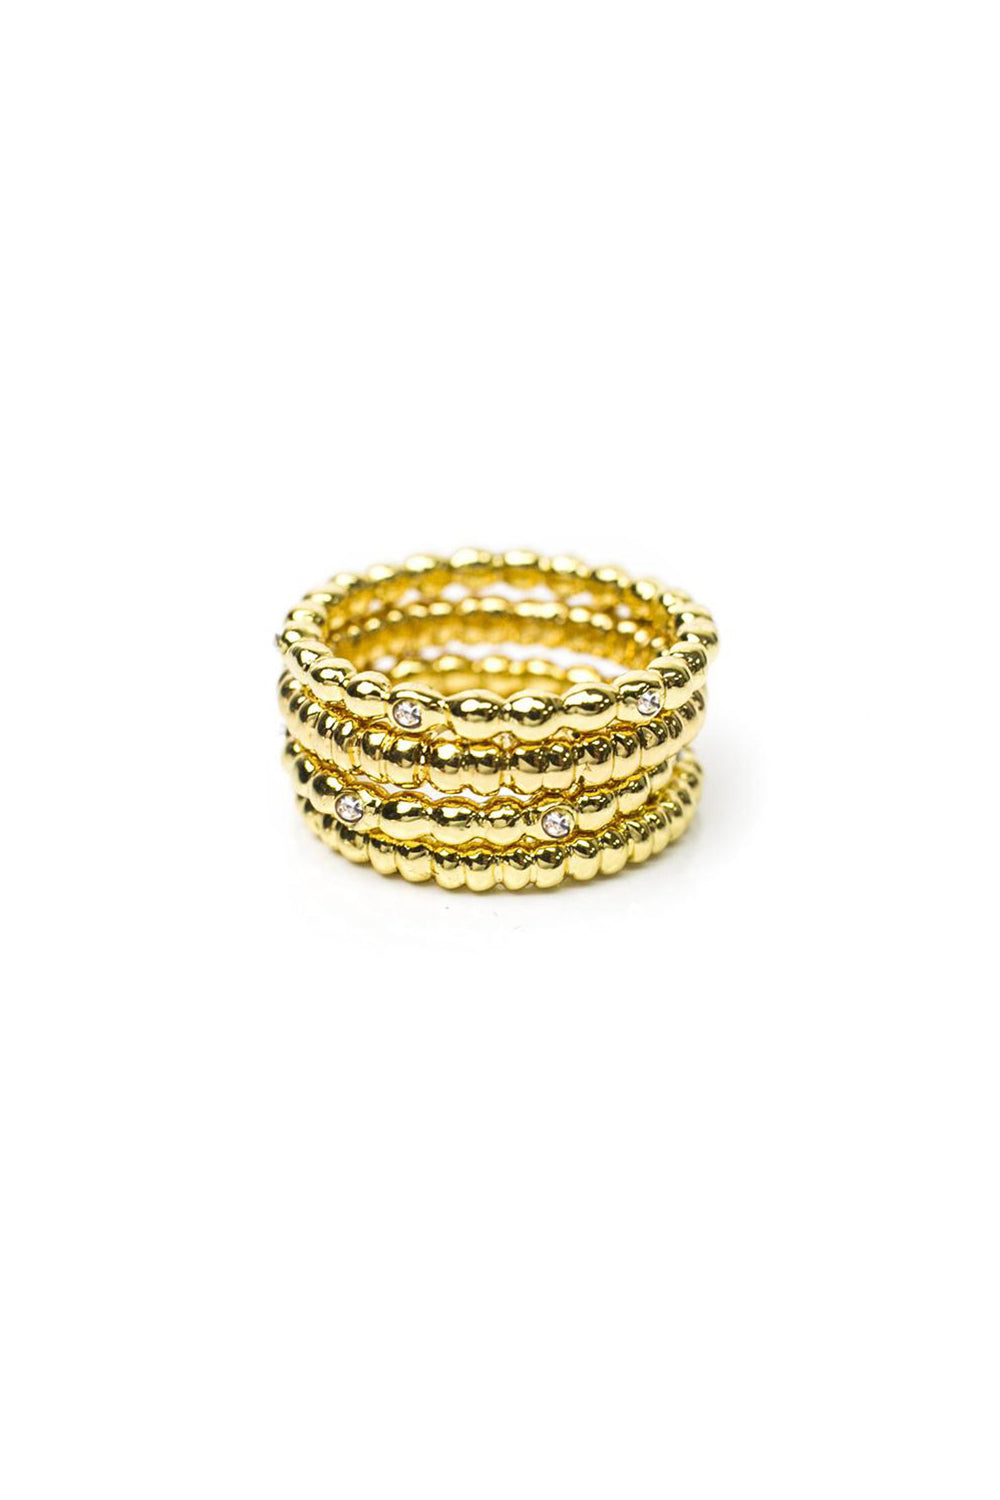 Rendezvous Stacking Rings